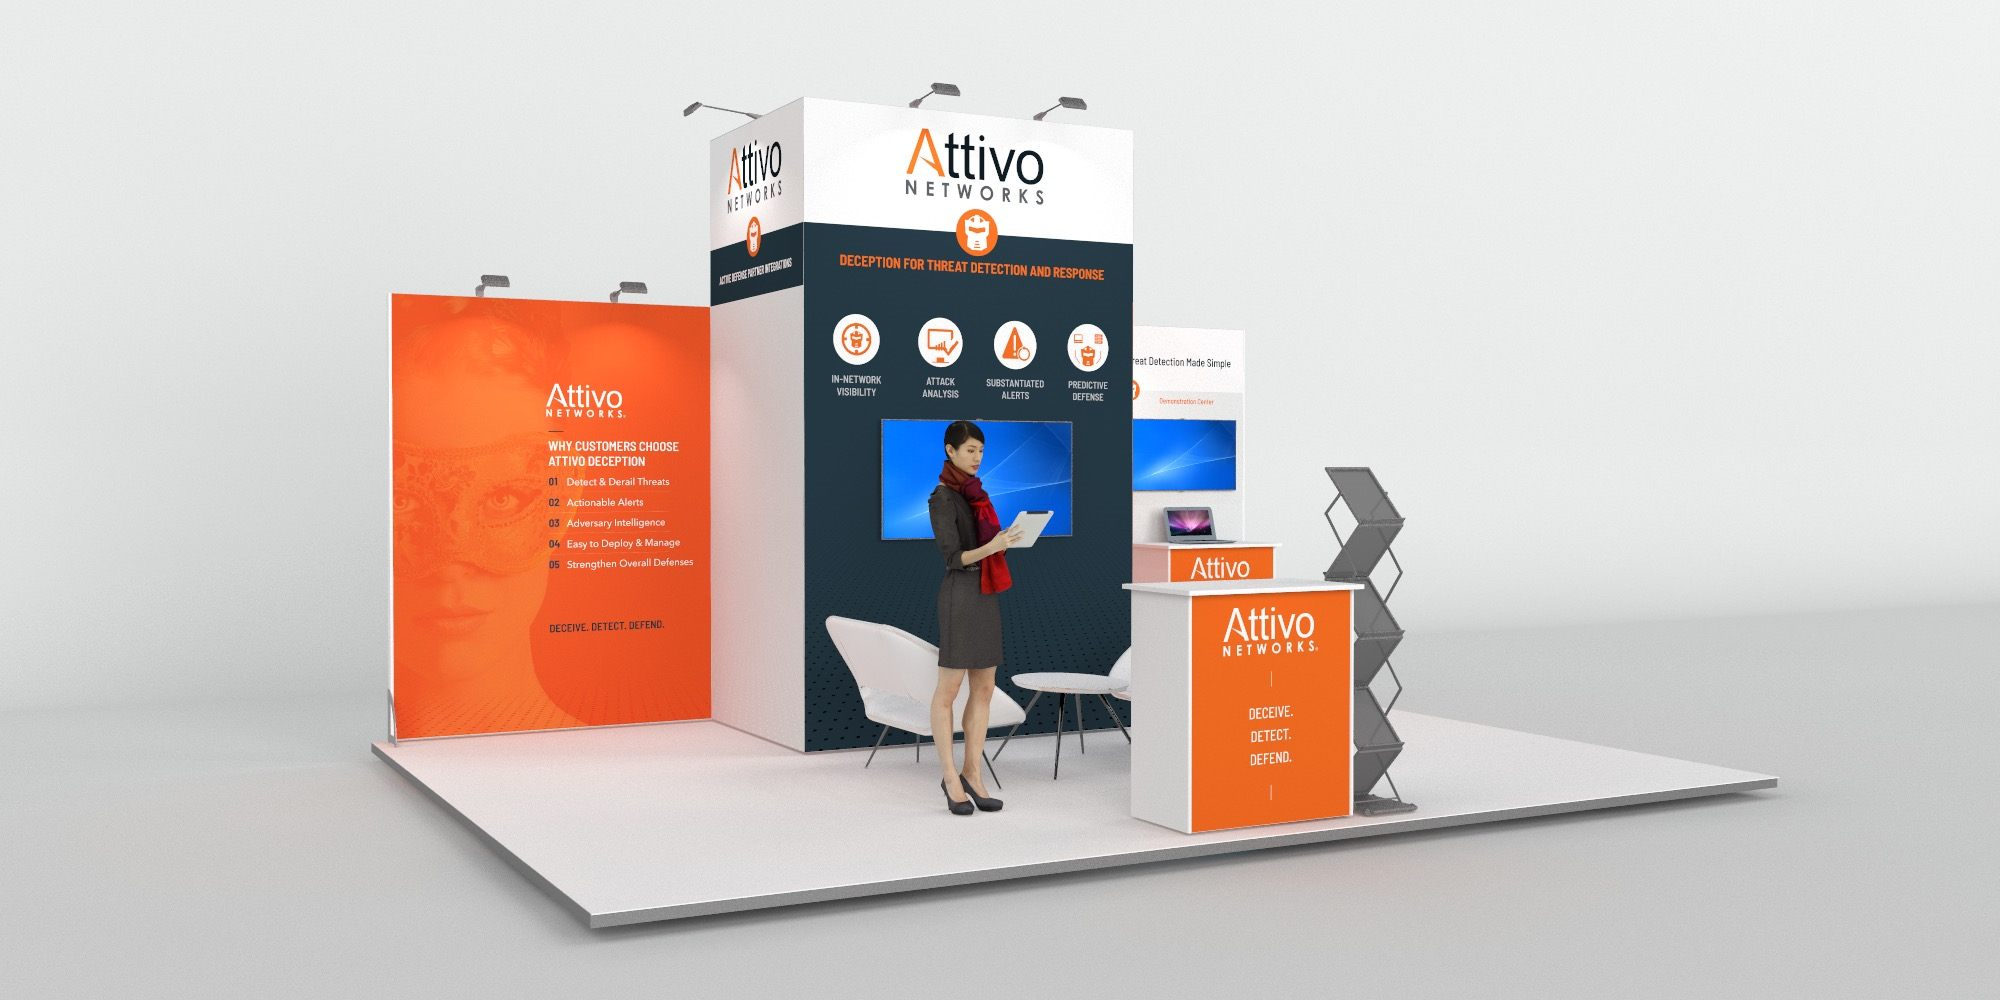 6x4.5m Exhibition Stand with 3.5m Feature Wall View 2